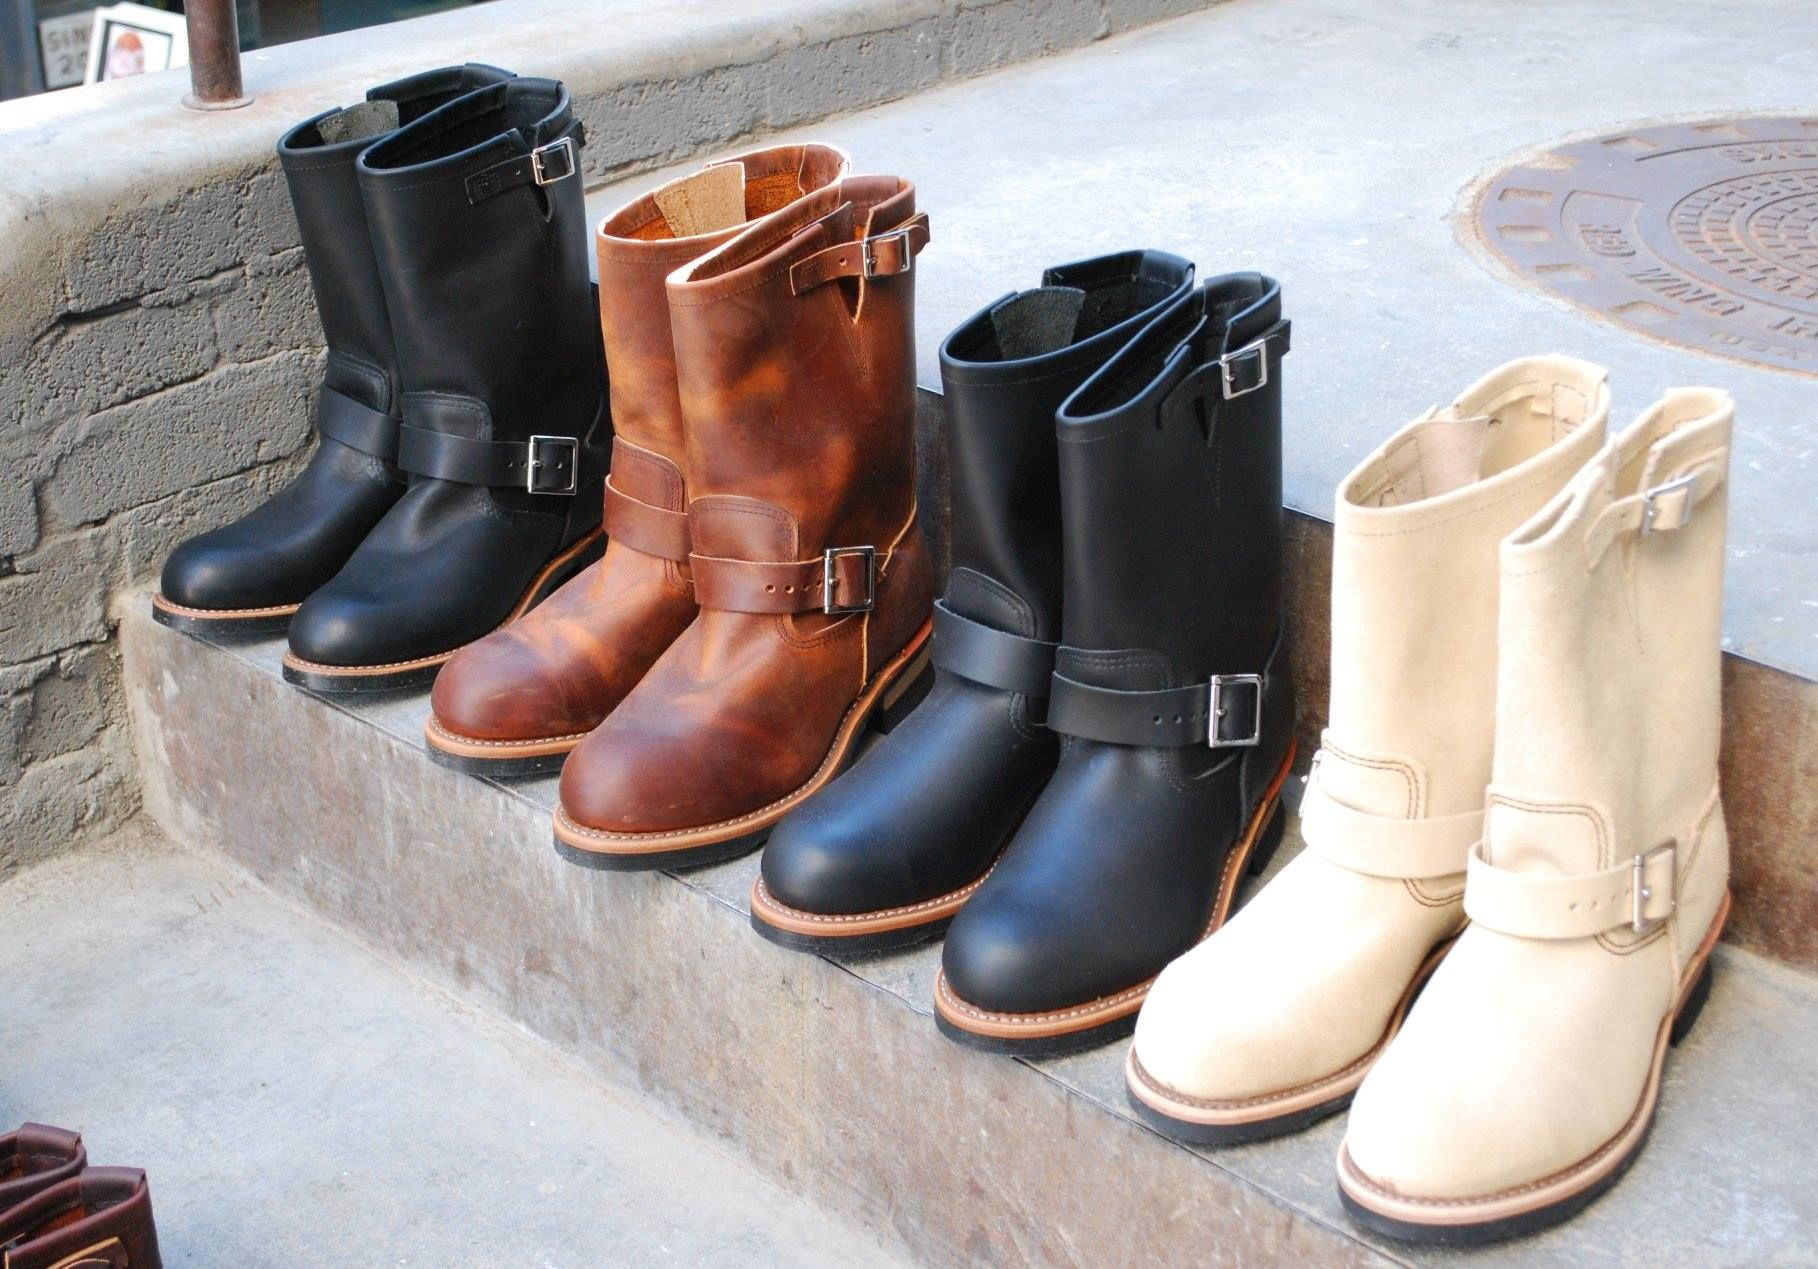 RED WING 2268 ENGINEER BOOTS | Silvermans